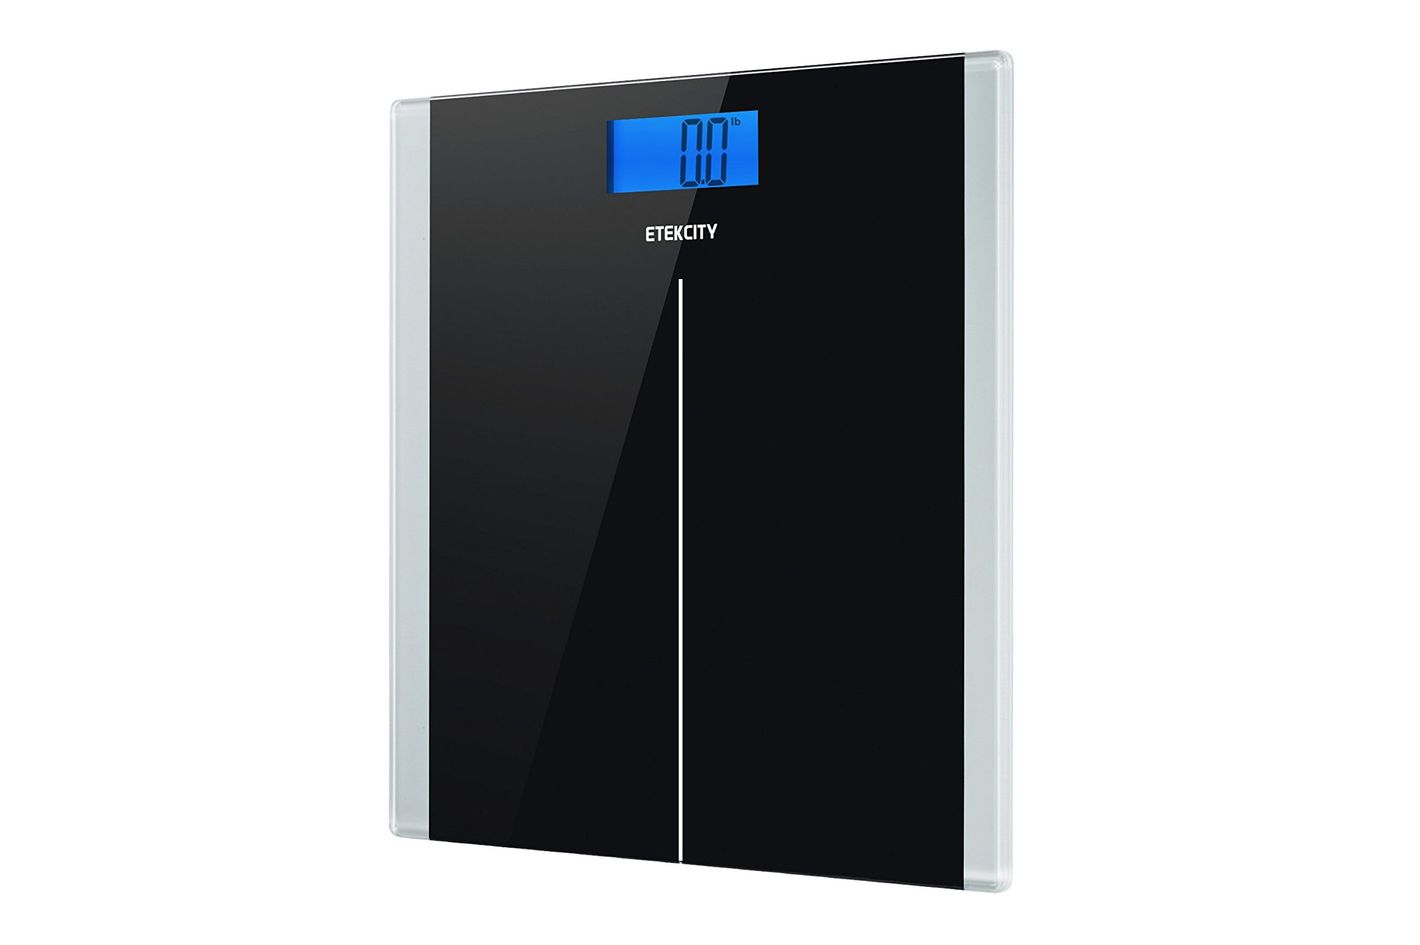 . 13 Best Bathroom Scales 2019